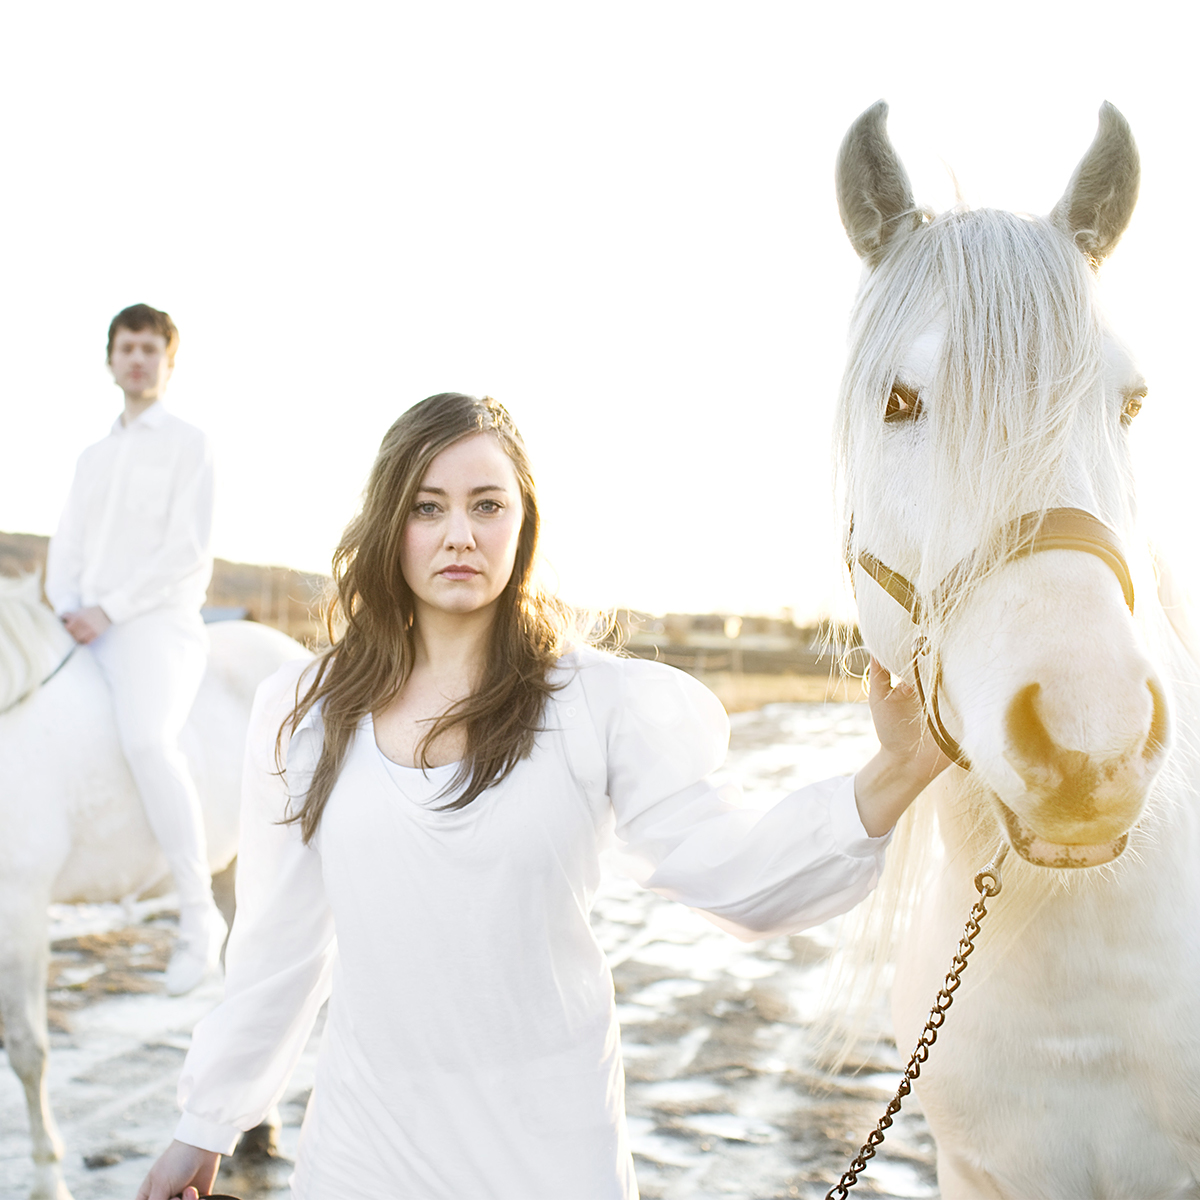 Two White Horses (photo: Andreas Nilsson)